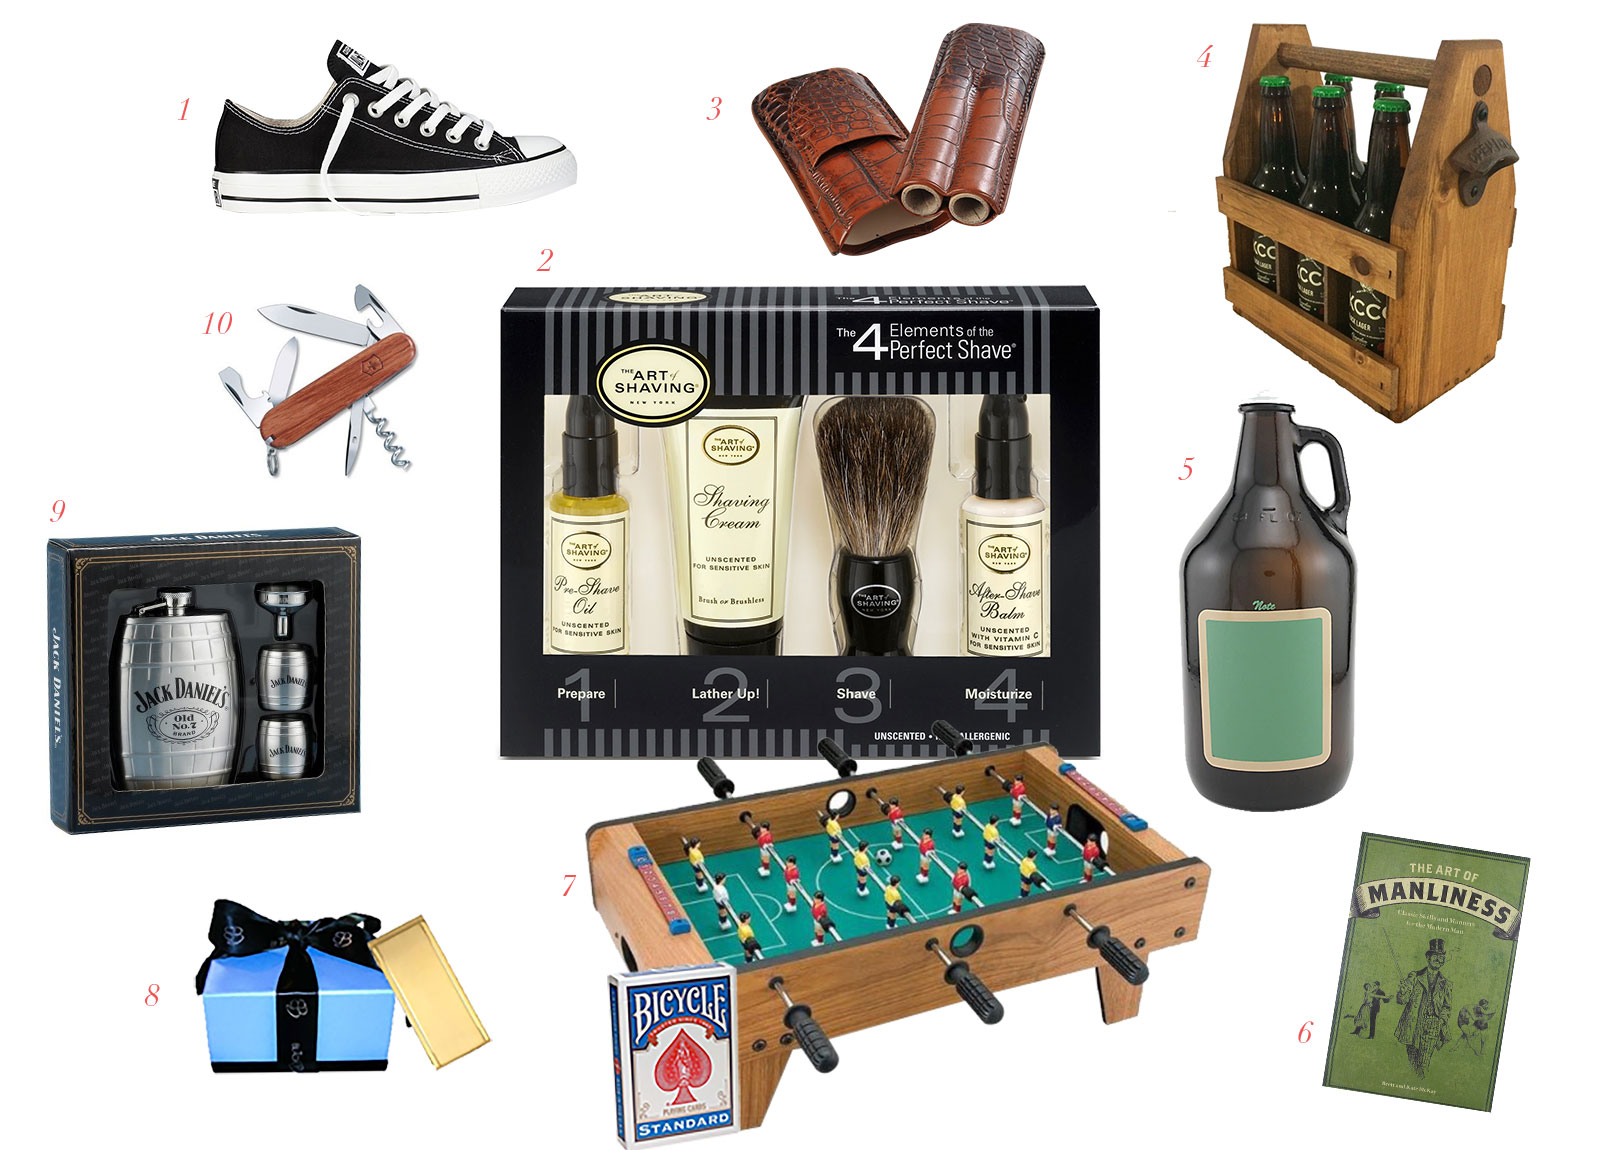 Appy Couple's gift ideas for groomsmen